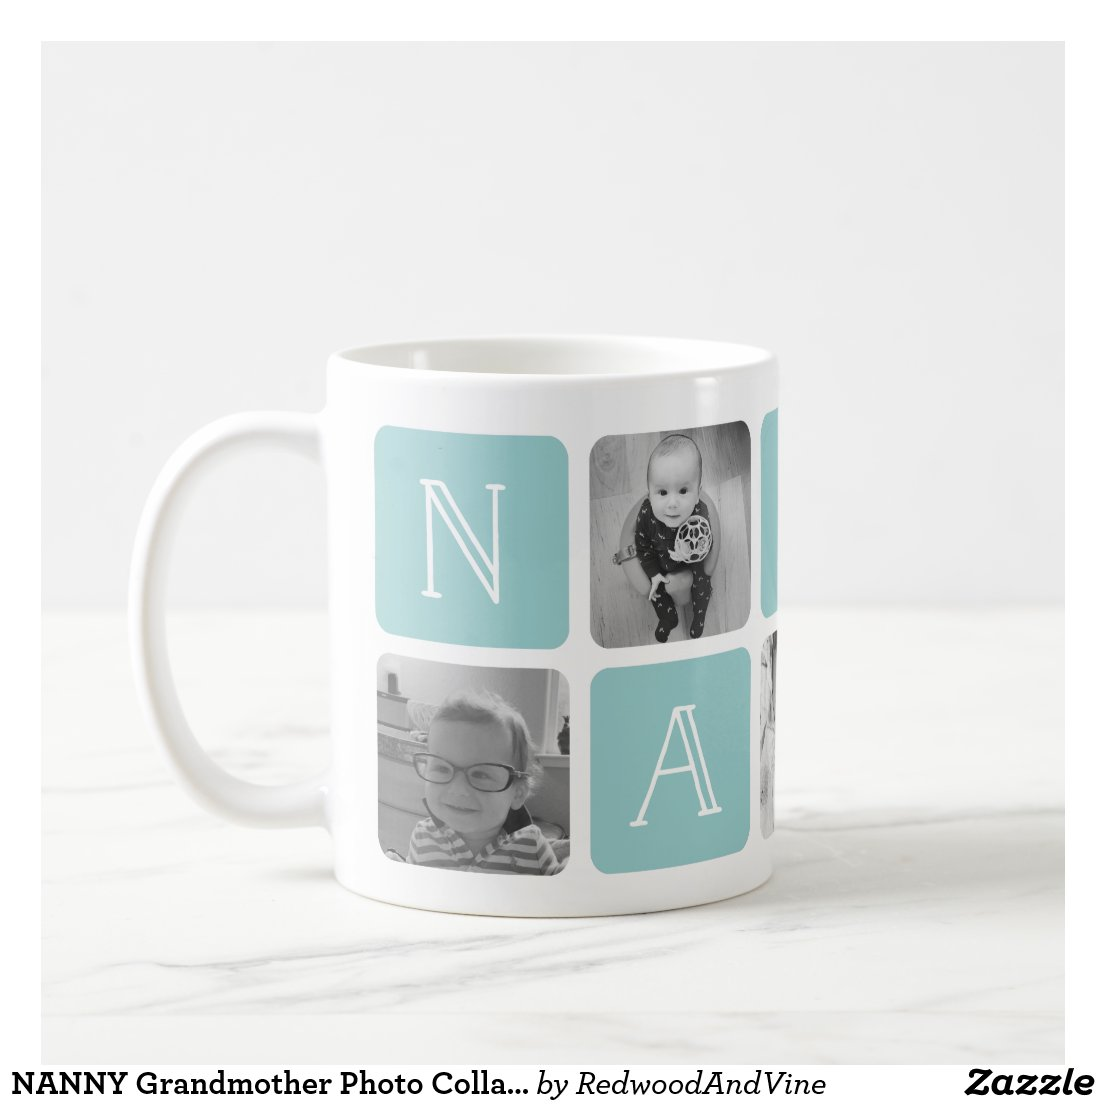 NANNY Grandmother Photo Collage Coffee Mug